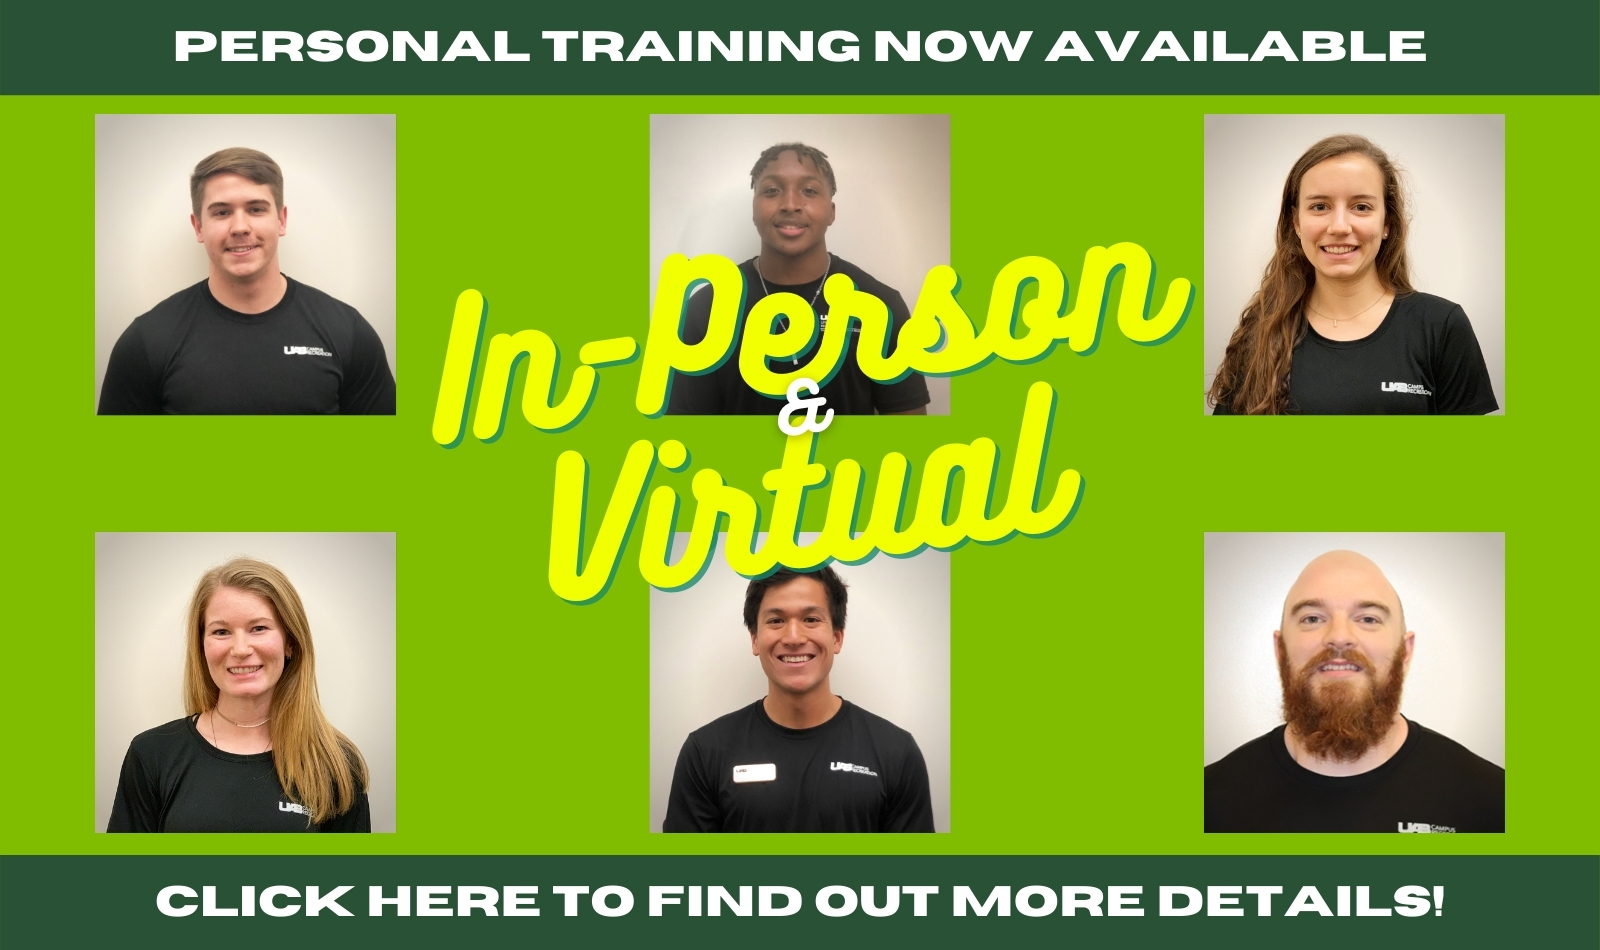 Personal Trainer Web Banner